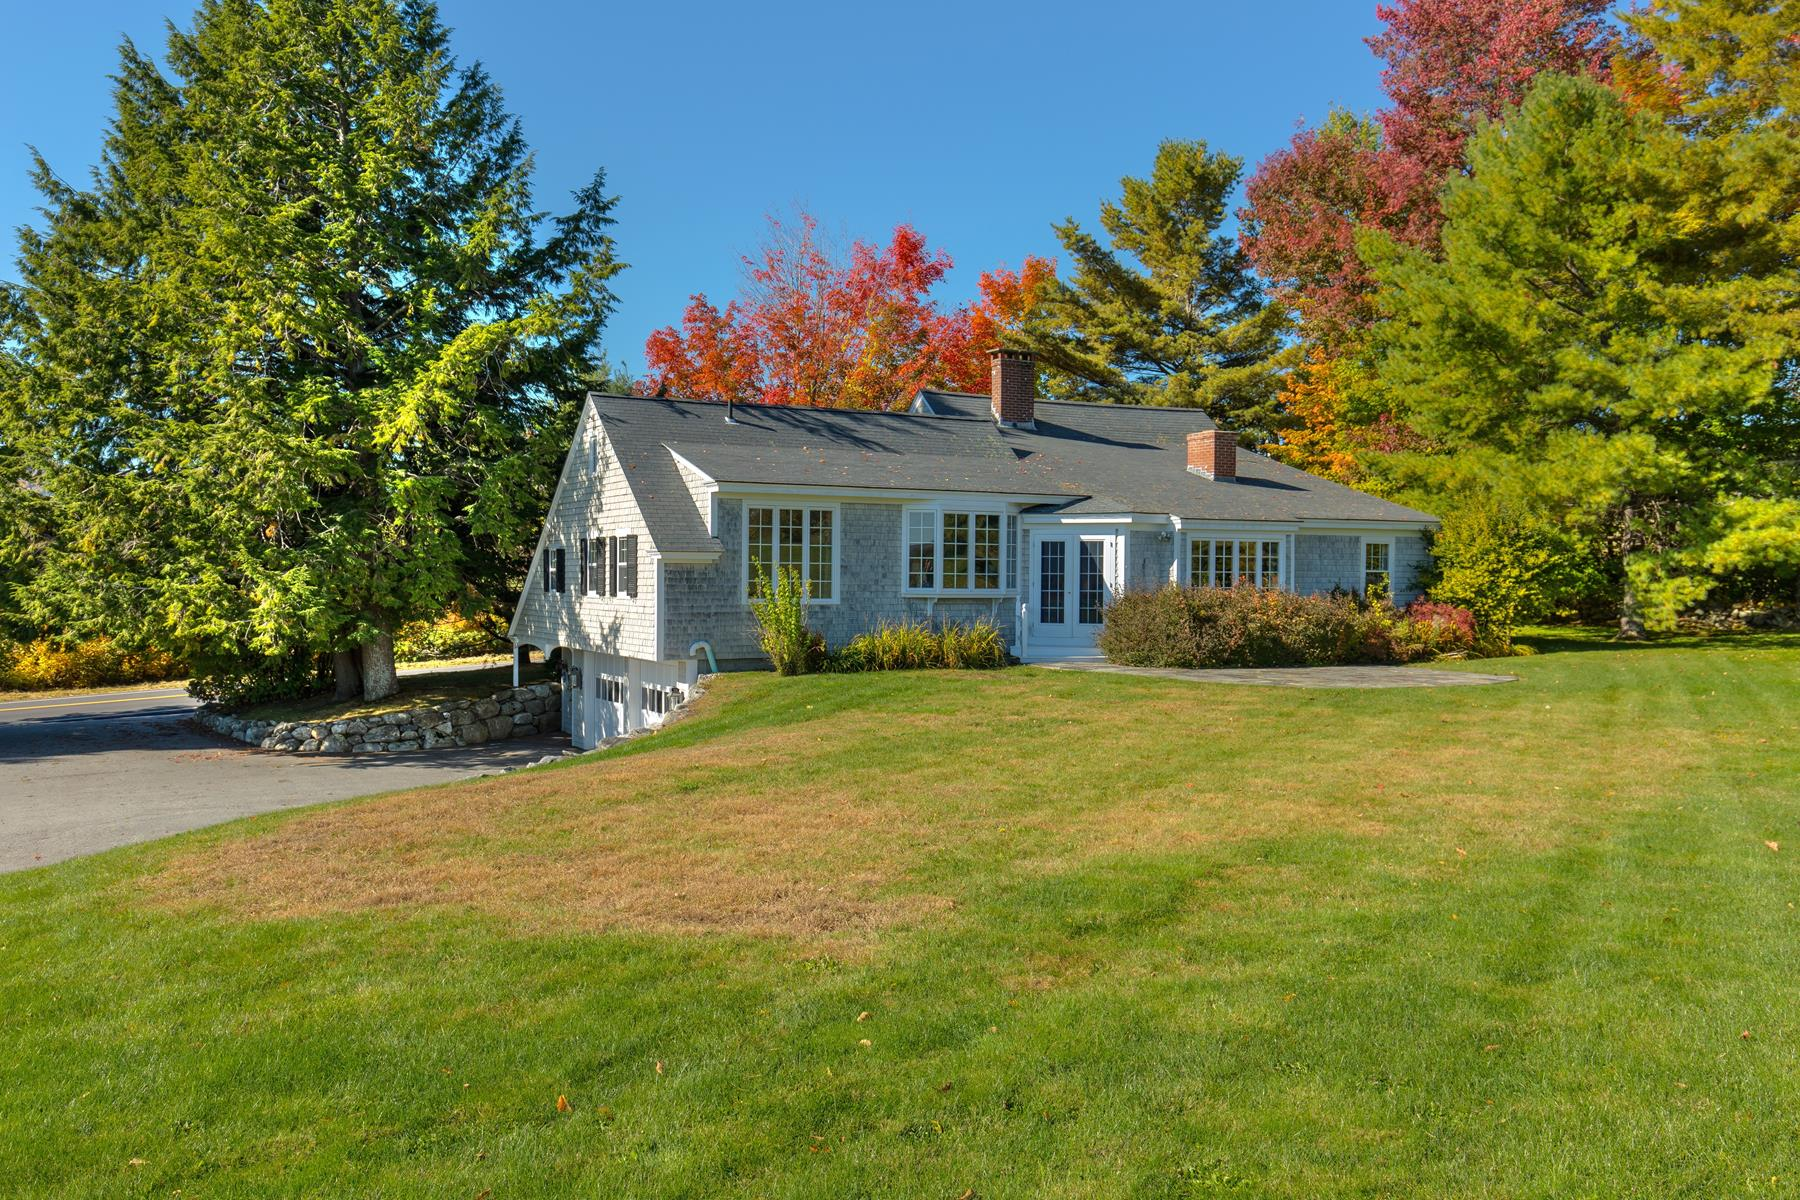 Single Family Home for Sale at 105 Sutton Road, New London 105 Sutton Rd New London, New Hampshire, 03257 United States